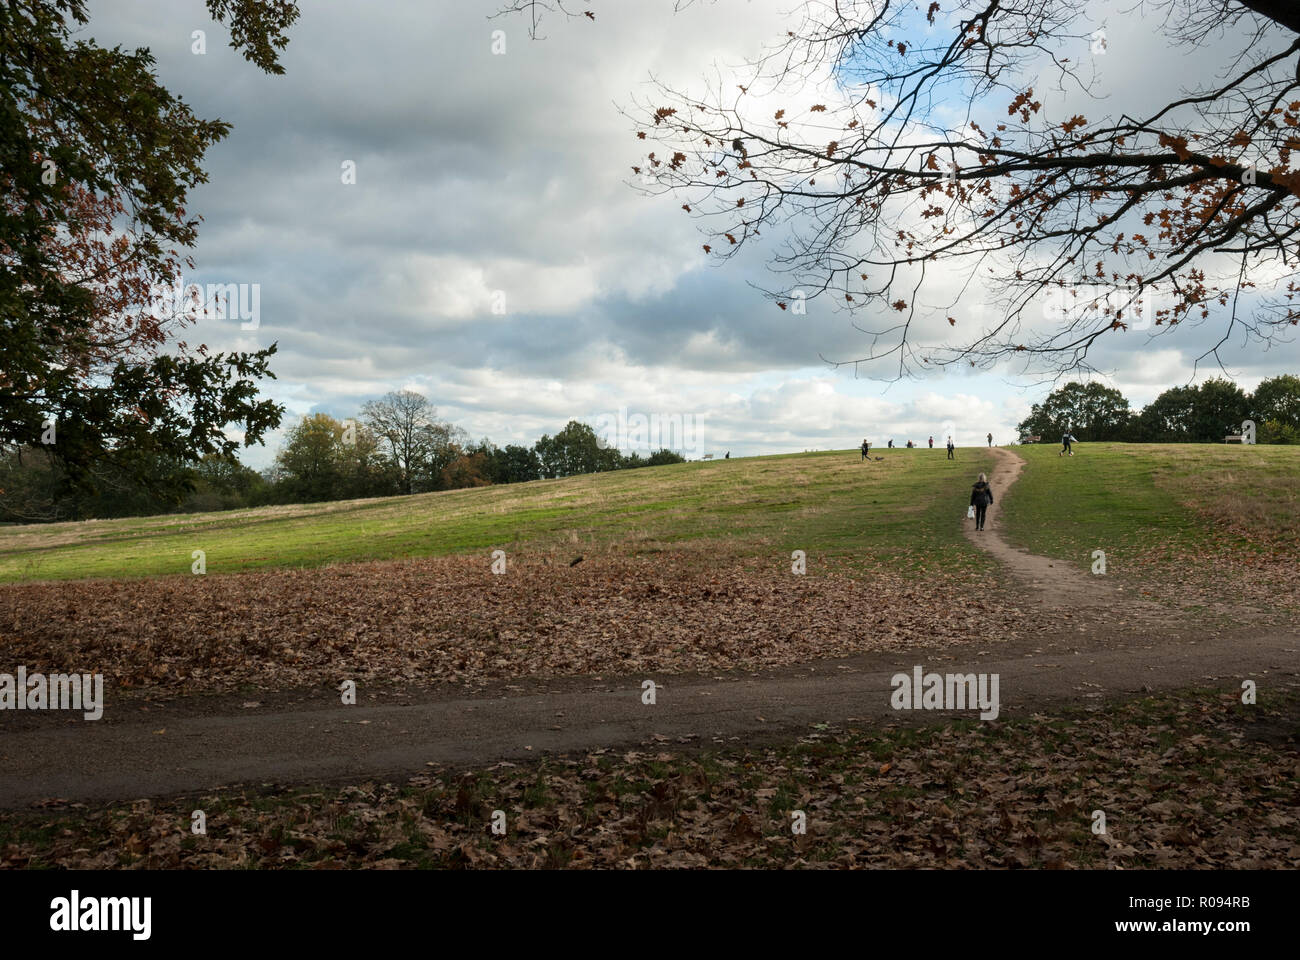 Autumn colours with leaves on the ground. A sunny day with clouds on Parliament Hill, Hampstead heath. - Stock Image